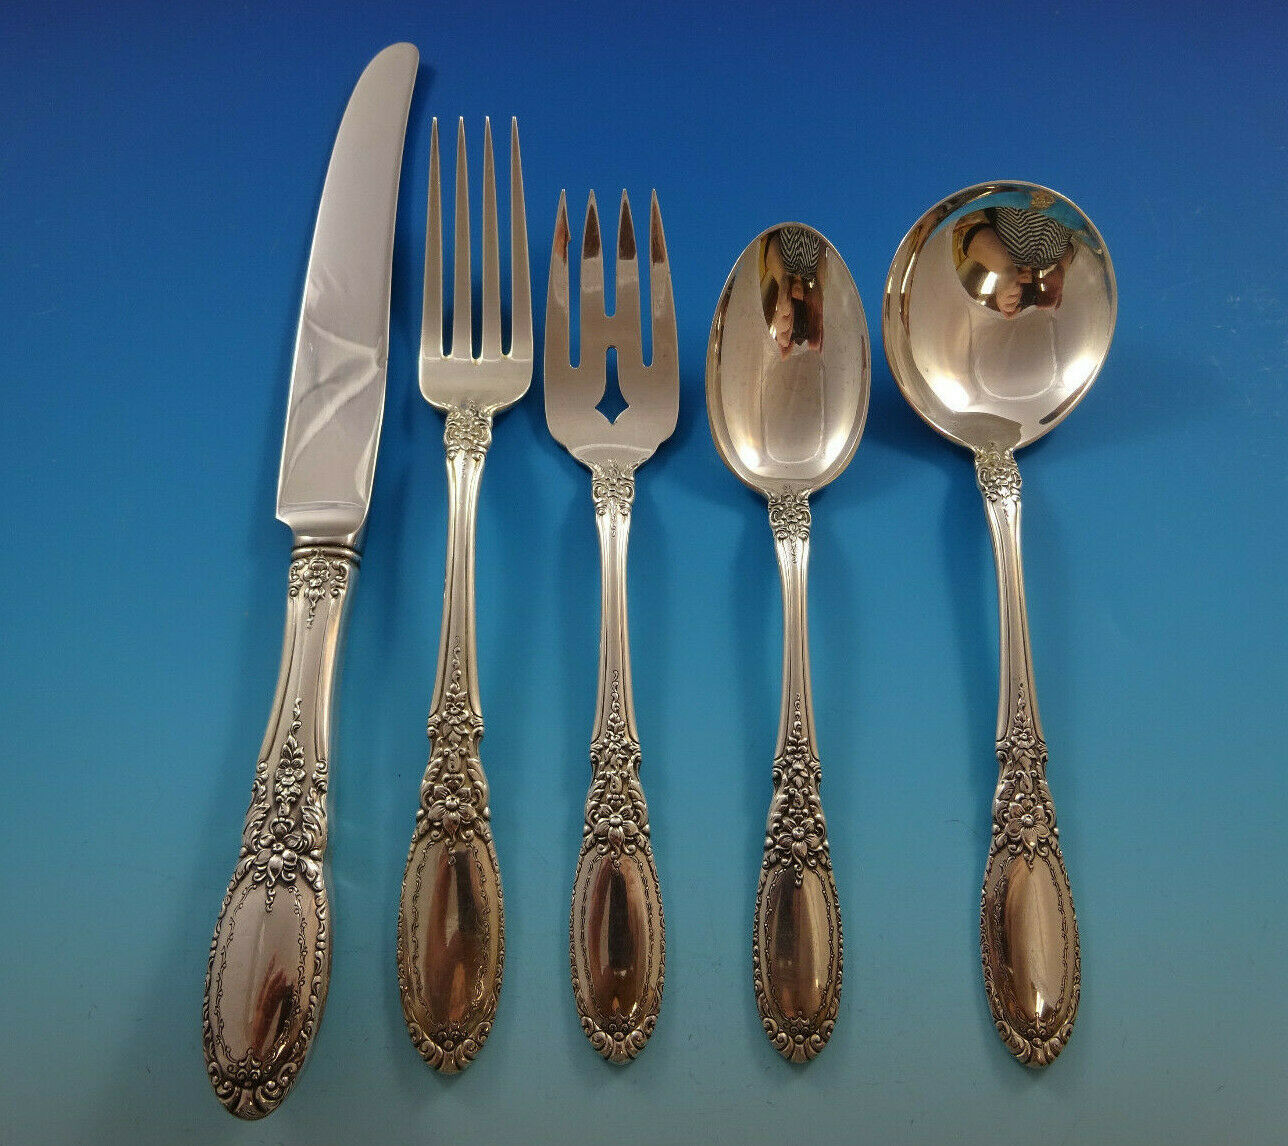 Primary image for Old Mirror by Towle Sterling Silver Flatware Service Set 30 Pieces